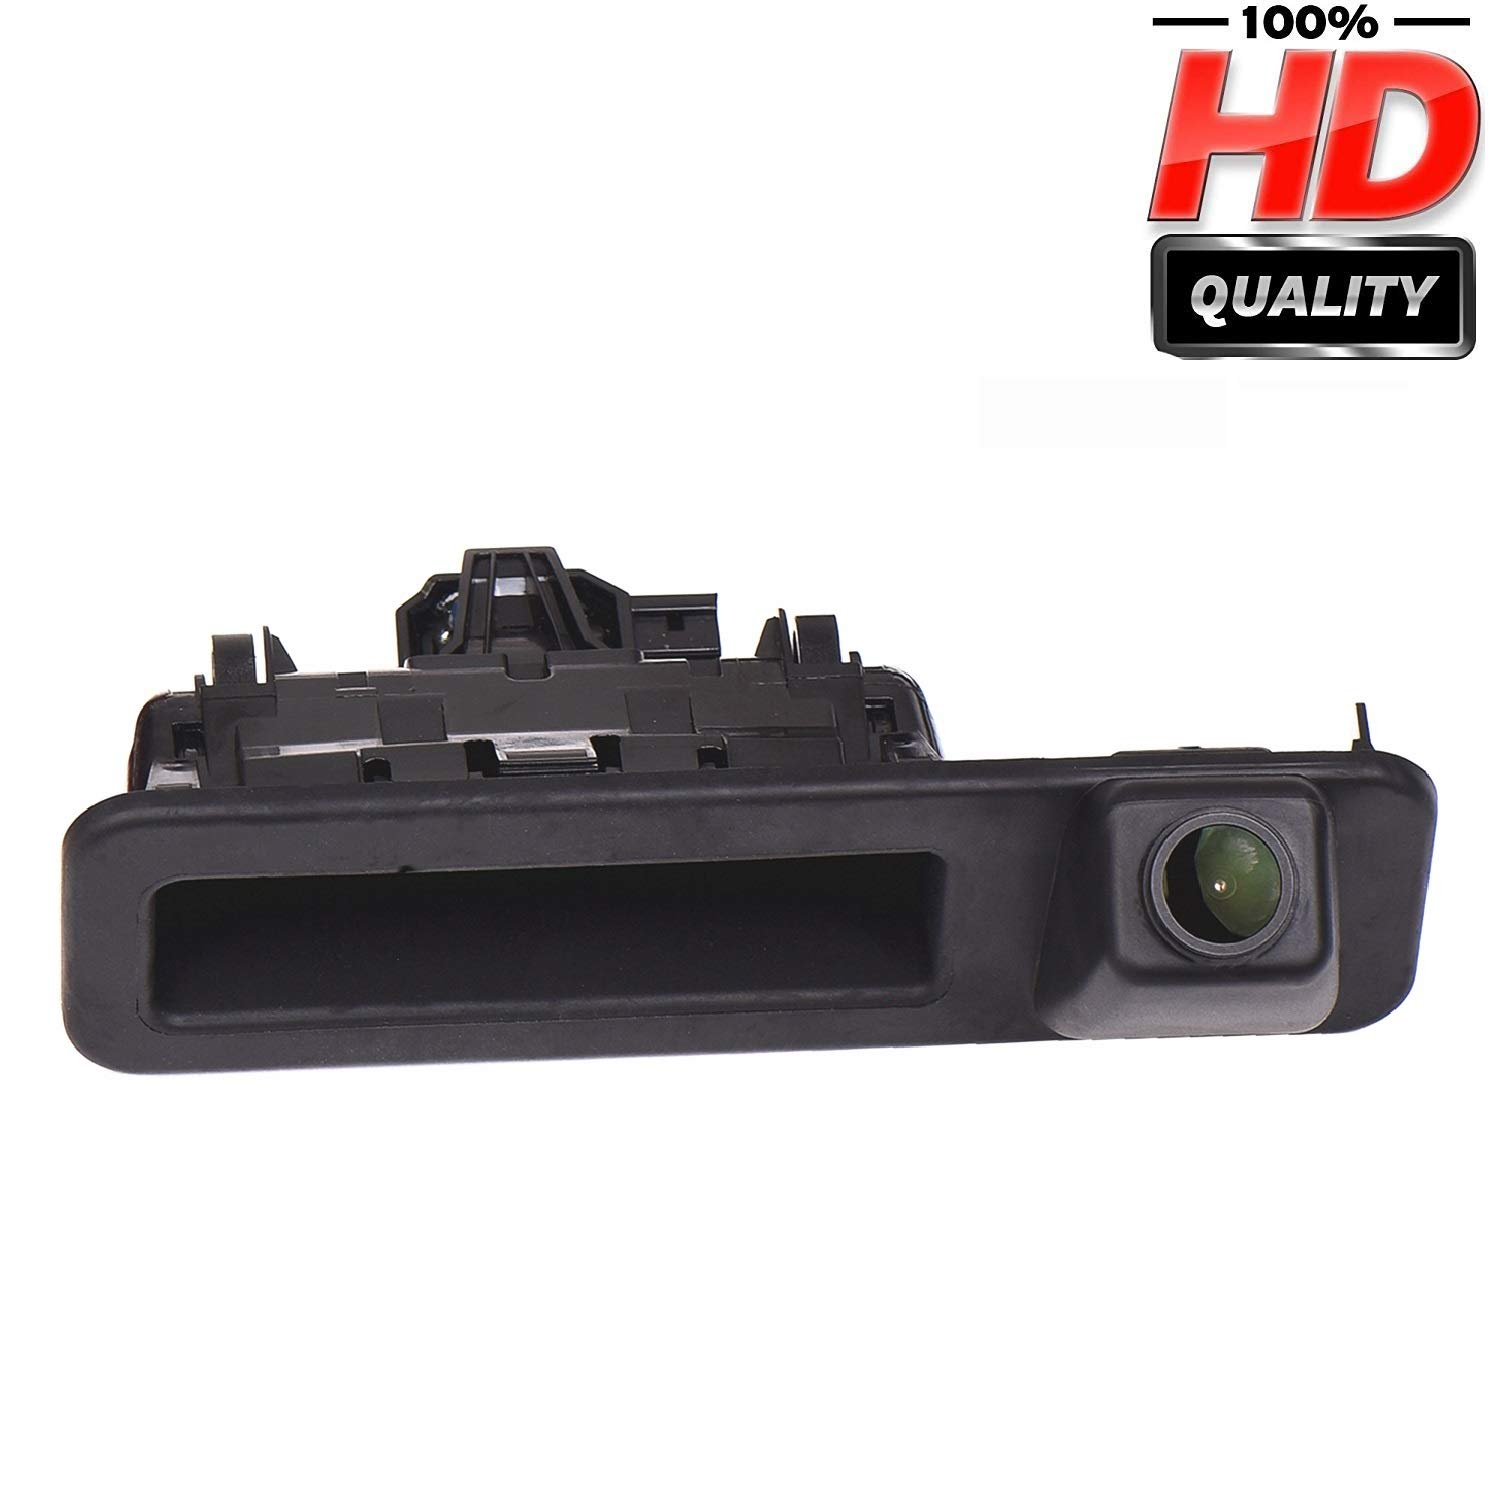 HD 1280x720p Rear Reversing Backup Camera Rearview Trunk Handle Replacement Camera Night Vision Ip68 Waterproof for BMW X1 F48 //BMW 1er F20 F21 BMW 3er F30 BMW 5er F10 2018-2019